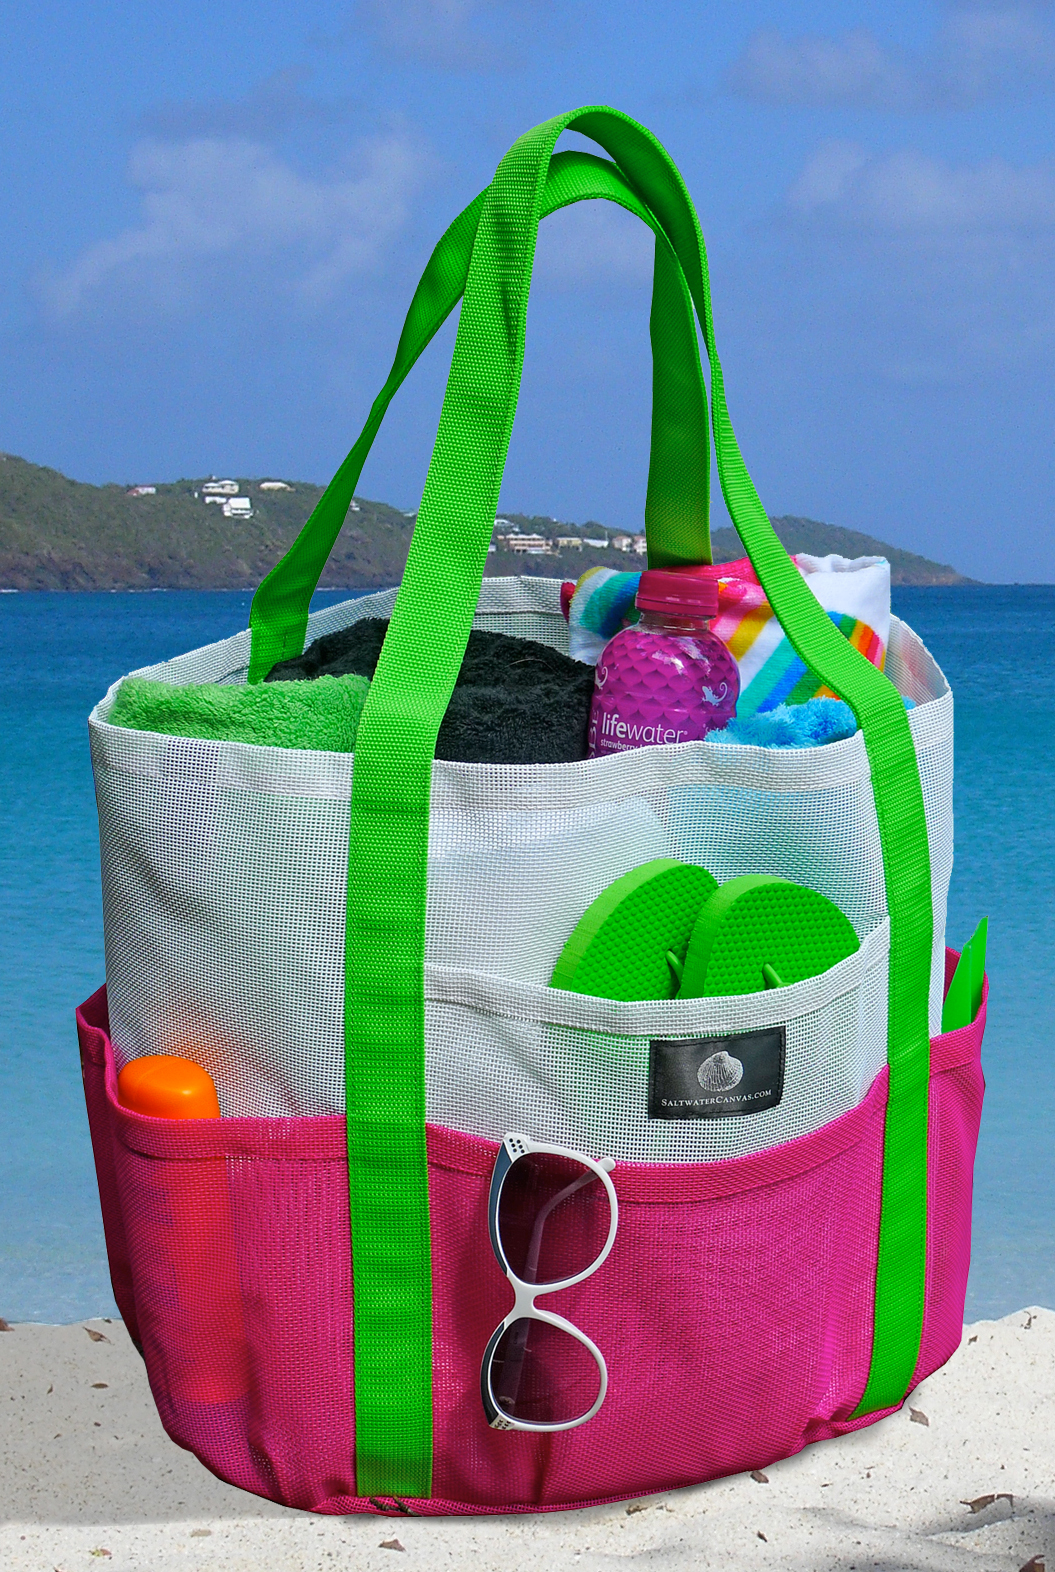 Behold, the Ultimate Beach Bag